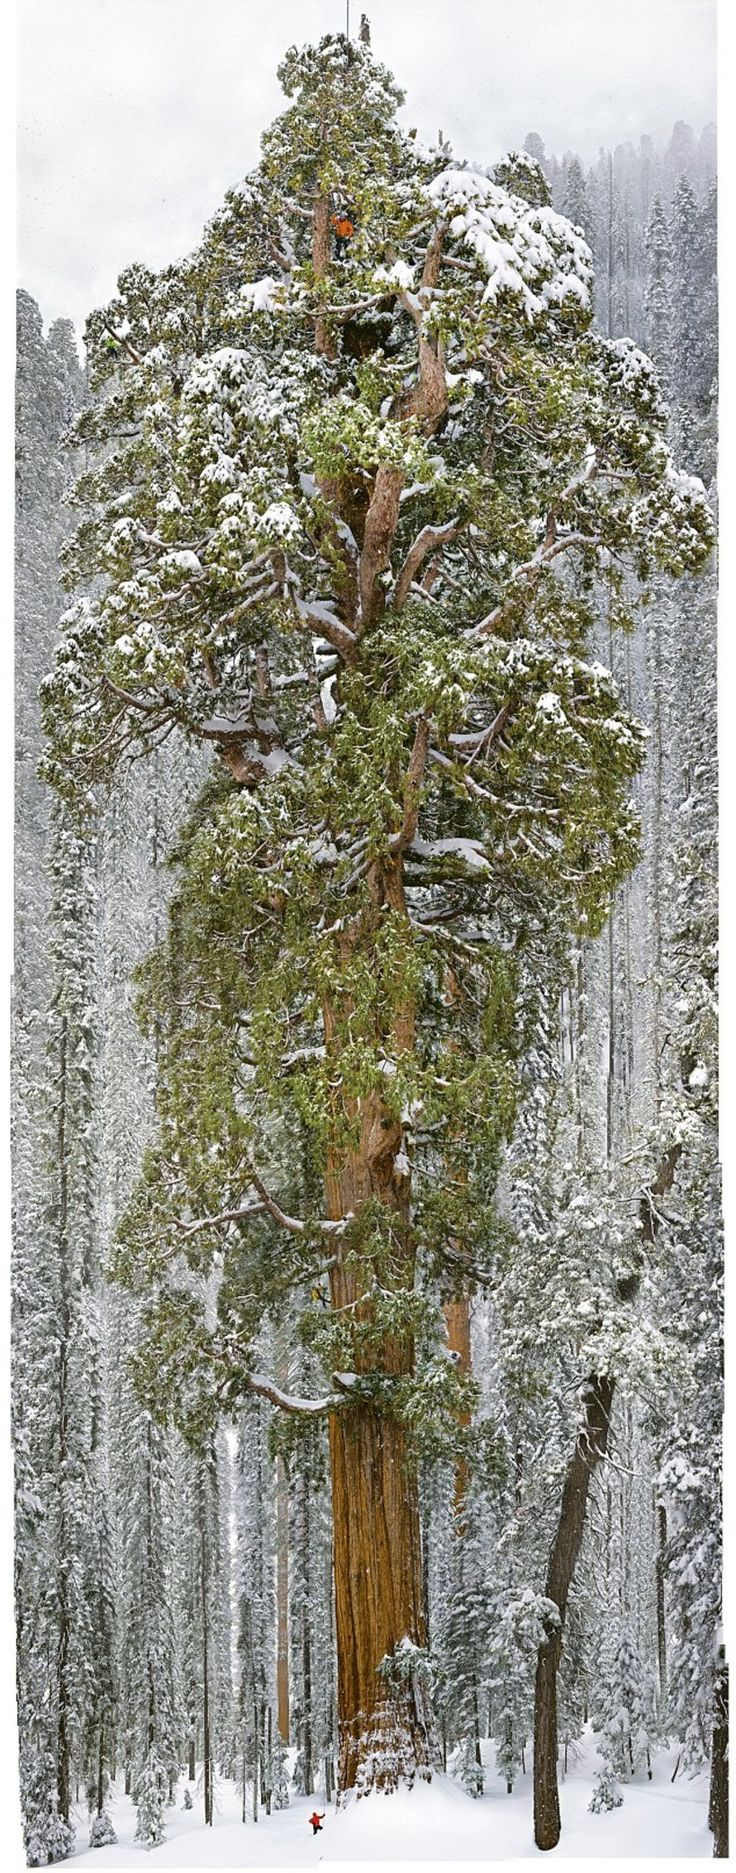 This 3,200-Year-Old Tree Is So Big, It's Never Been Captured In A Single Photograph... Until Now | facebook